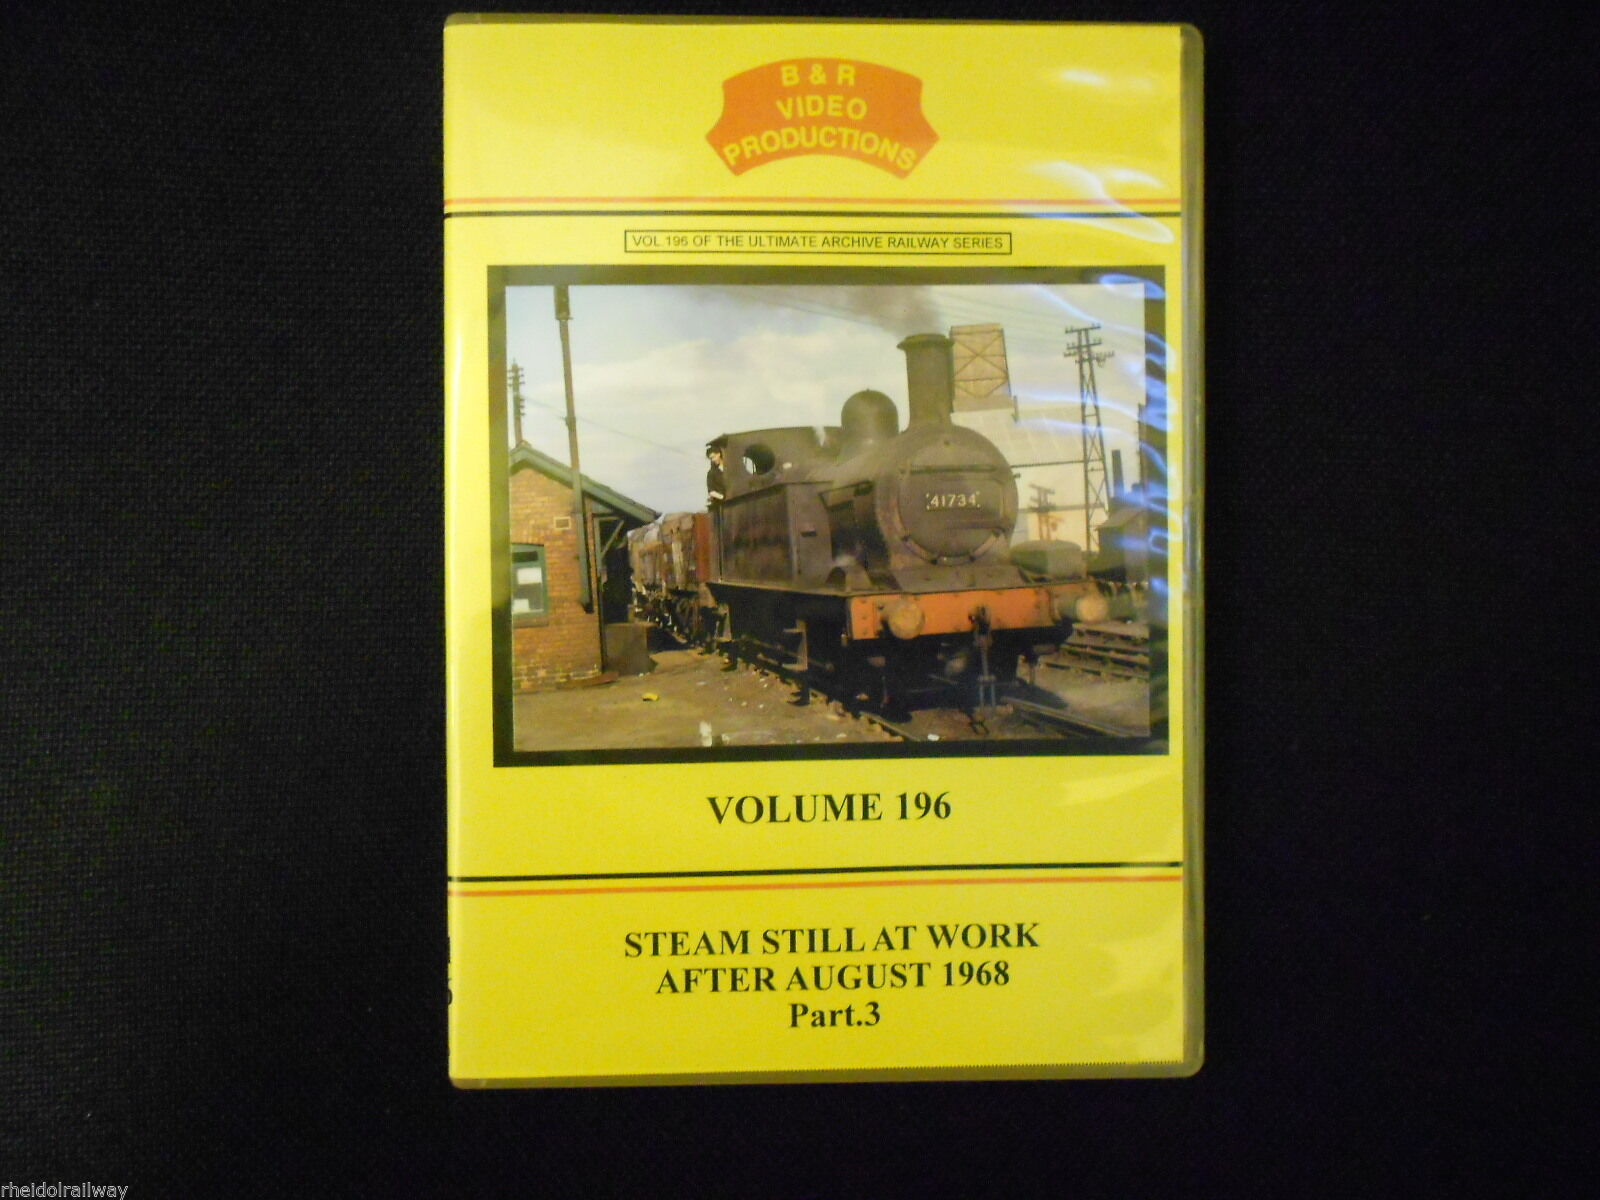 Longmoor, Didcot, Steam Still At Work After August 1968 Part 3 B&R Vol 196 DVD